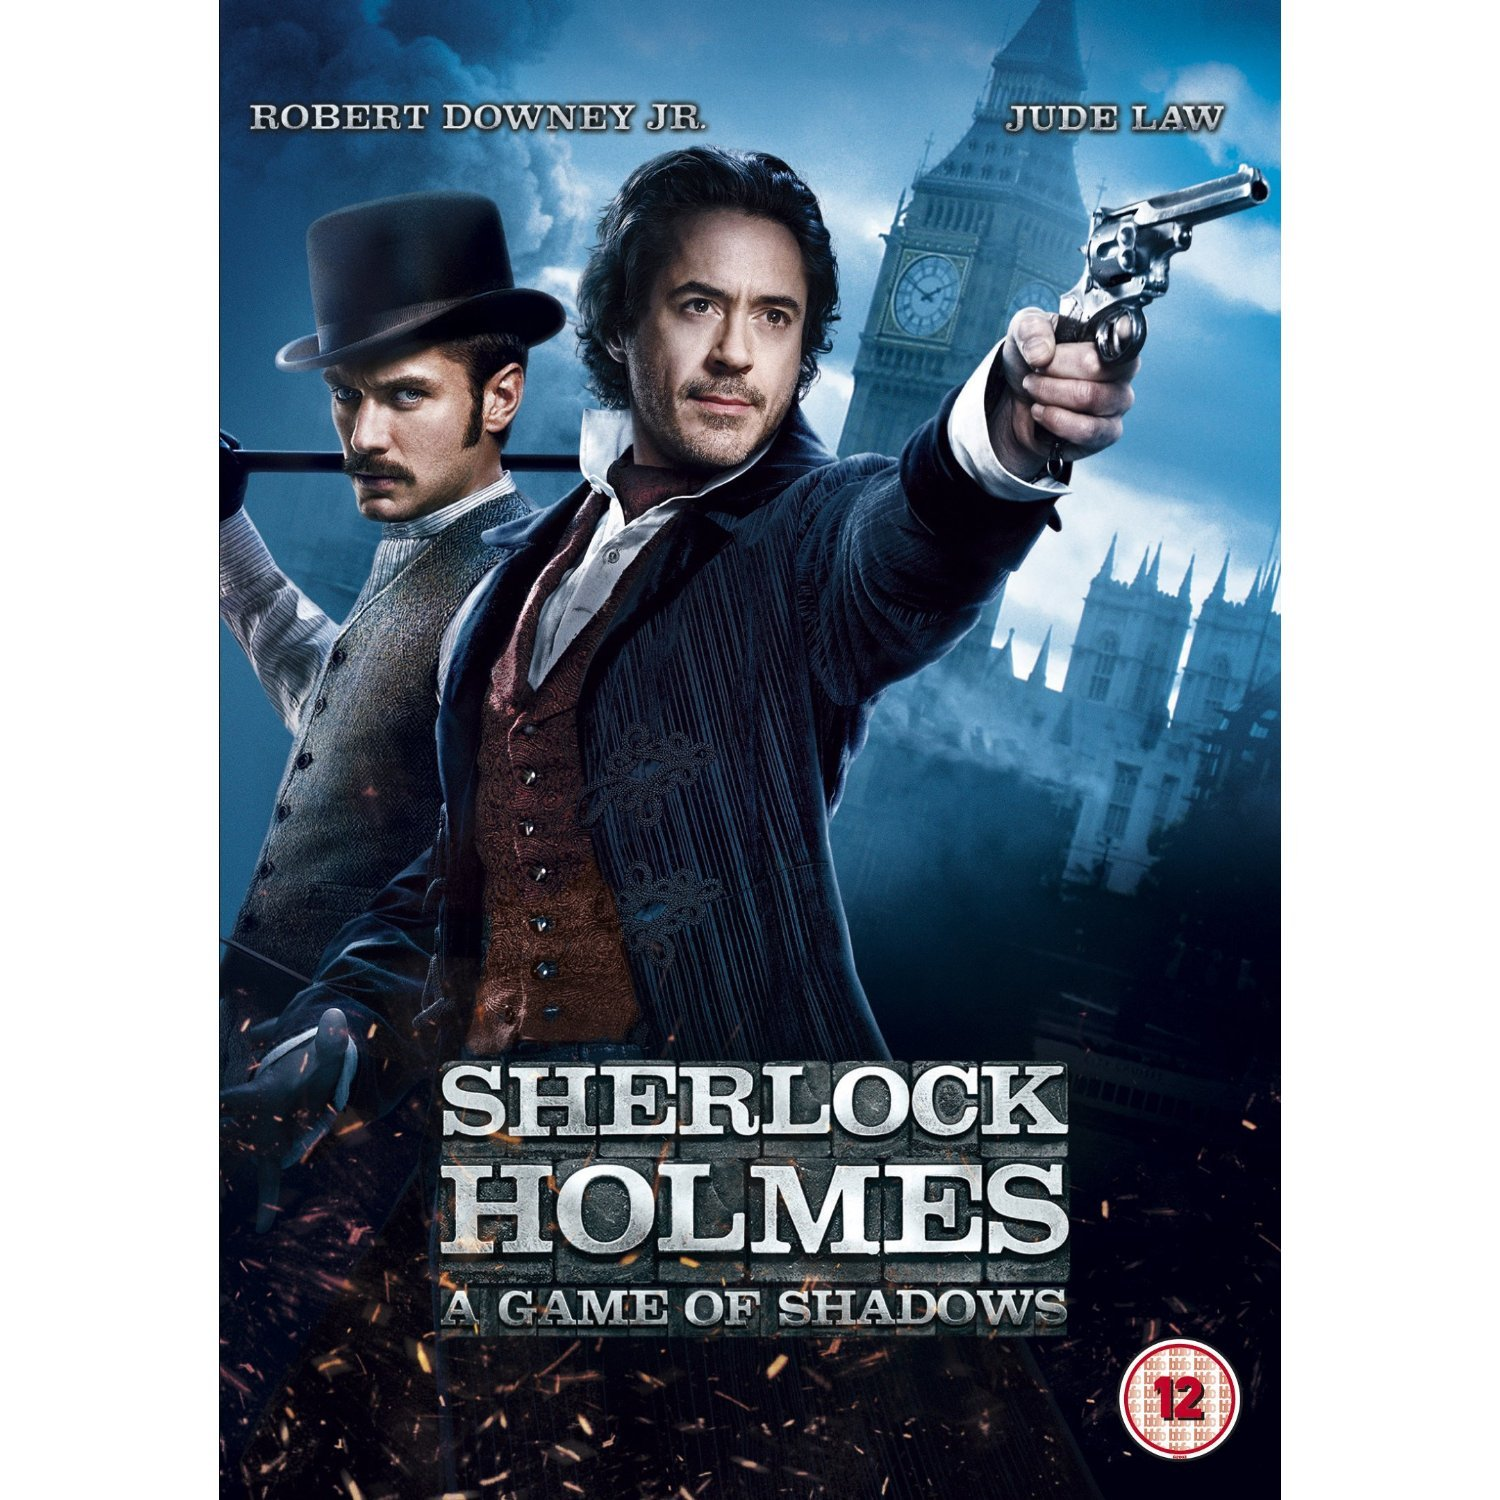 : Sherlock Holmes: A Game of Shadows [Region 2 DVD